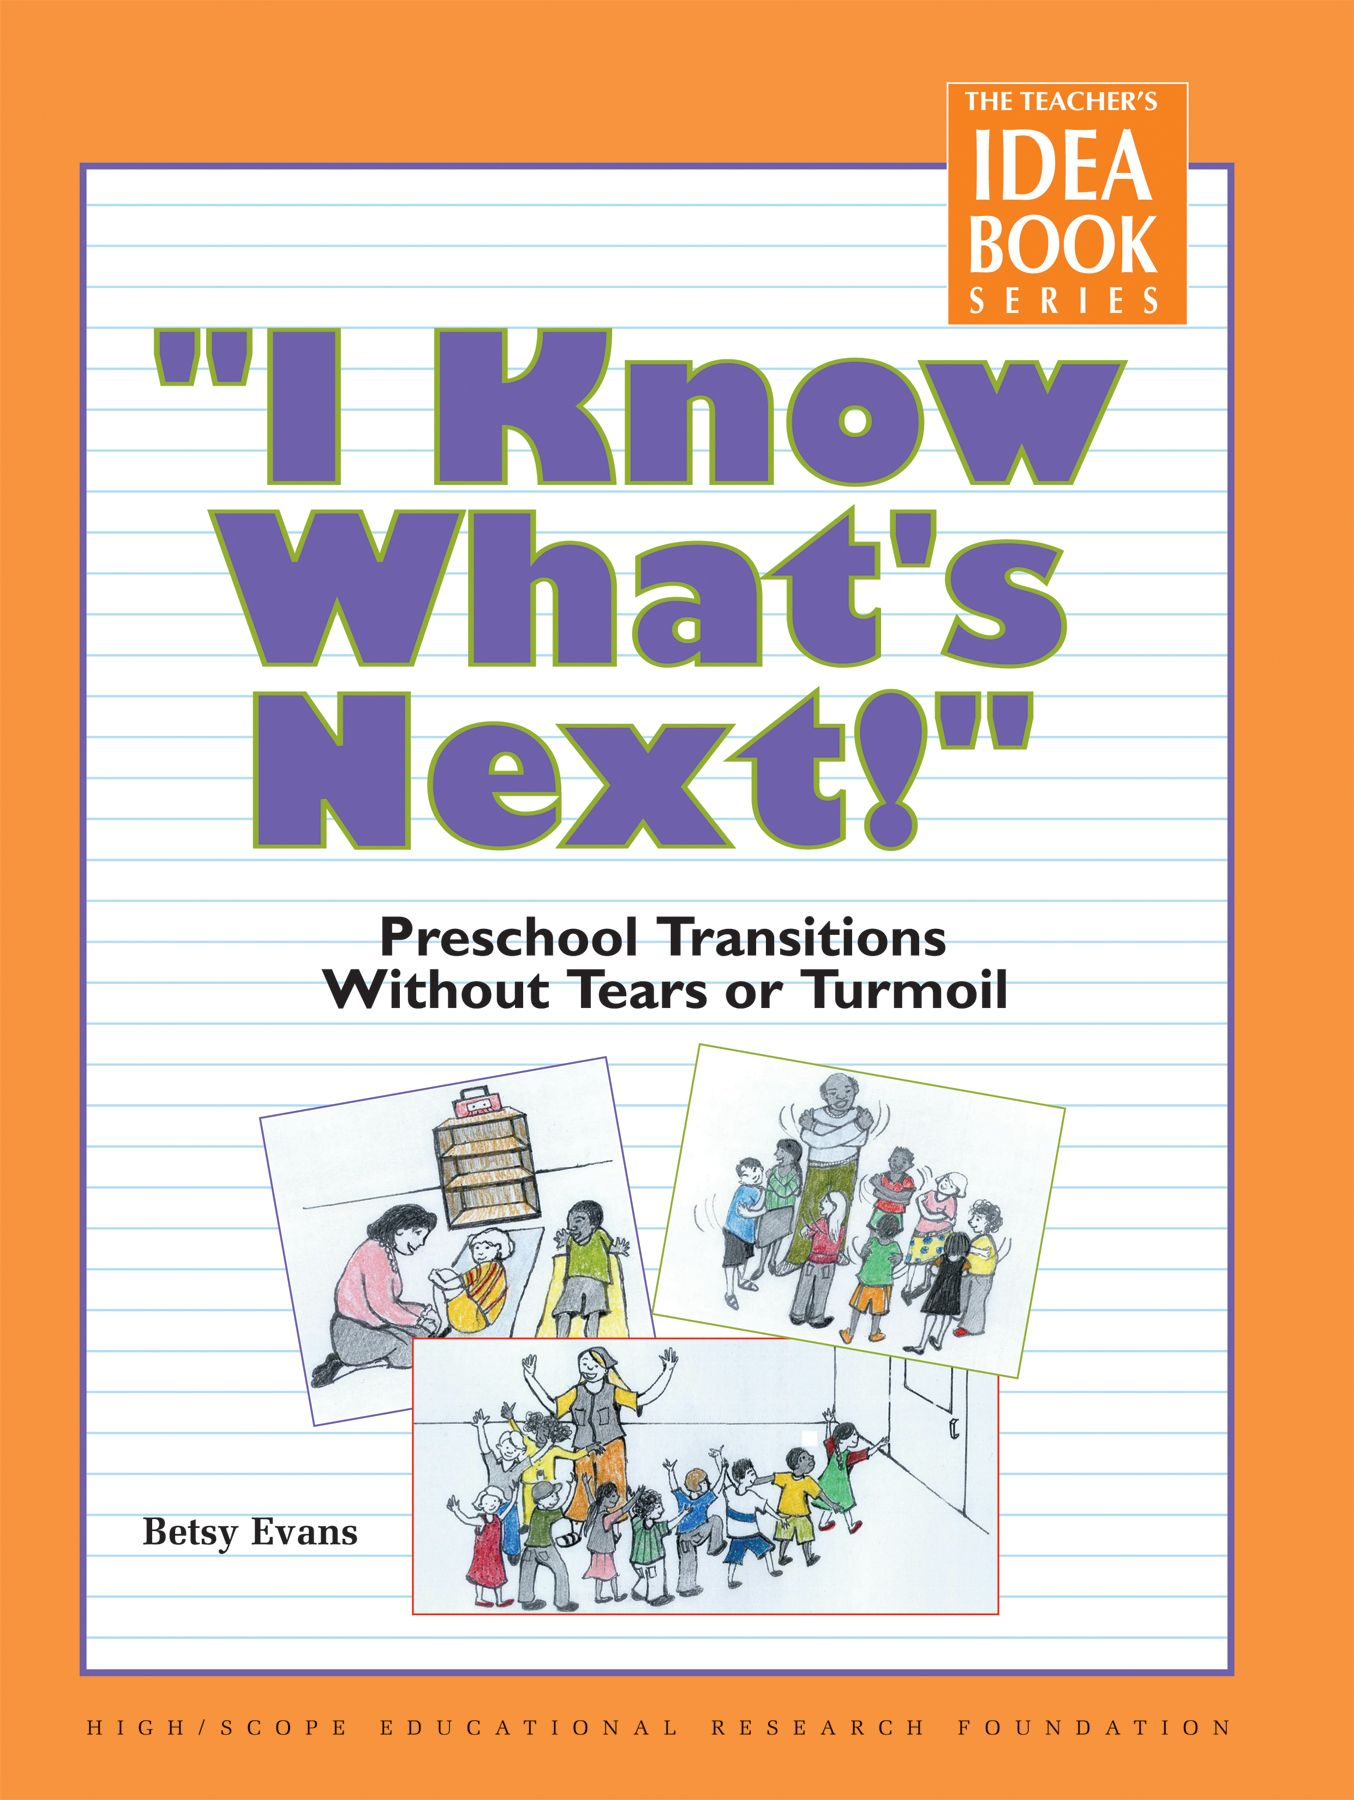 This book provides guidelines that help teachers